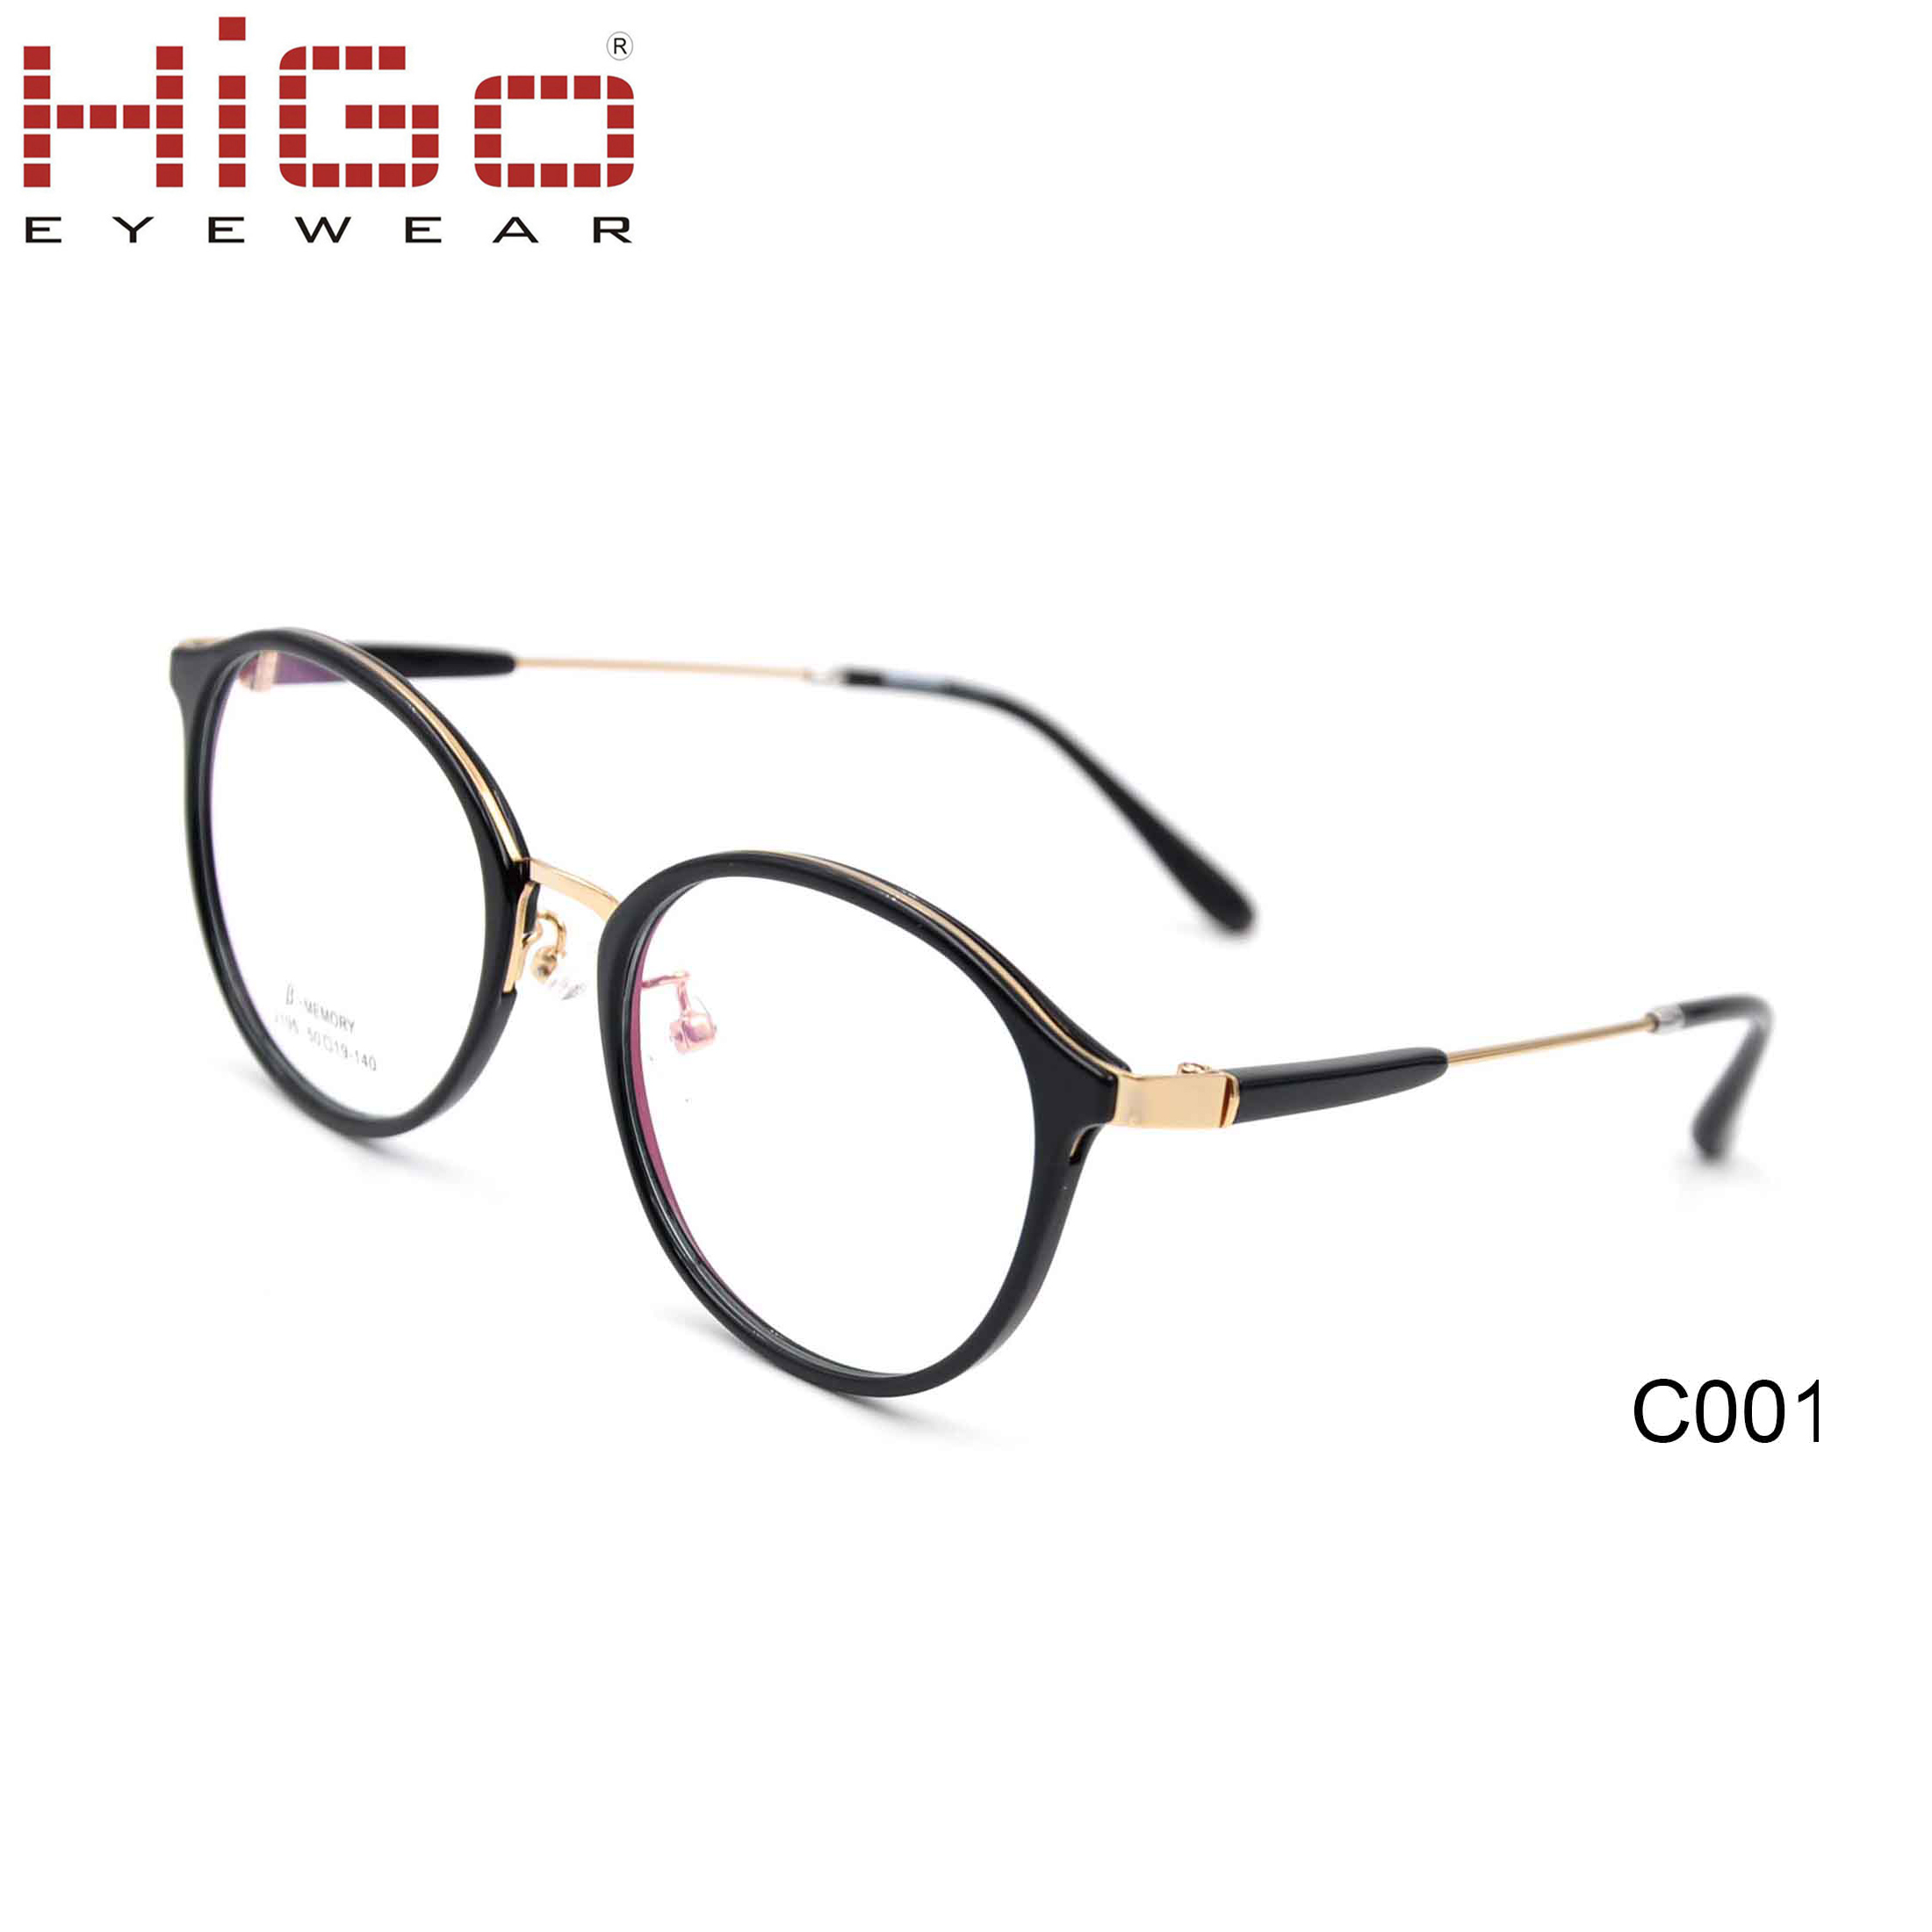 High Quality CE Vogue Round TR90 Eyeglasses Manufacture in China